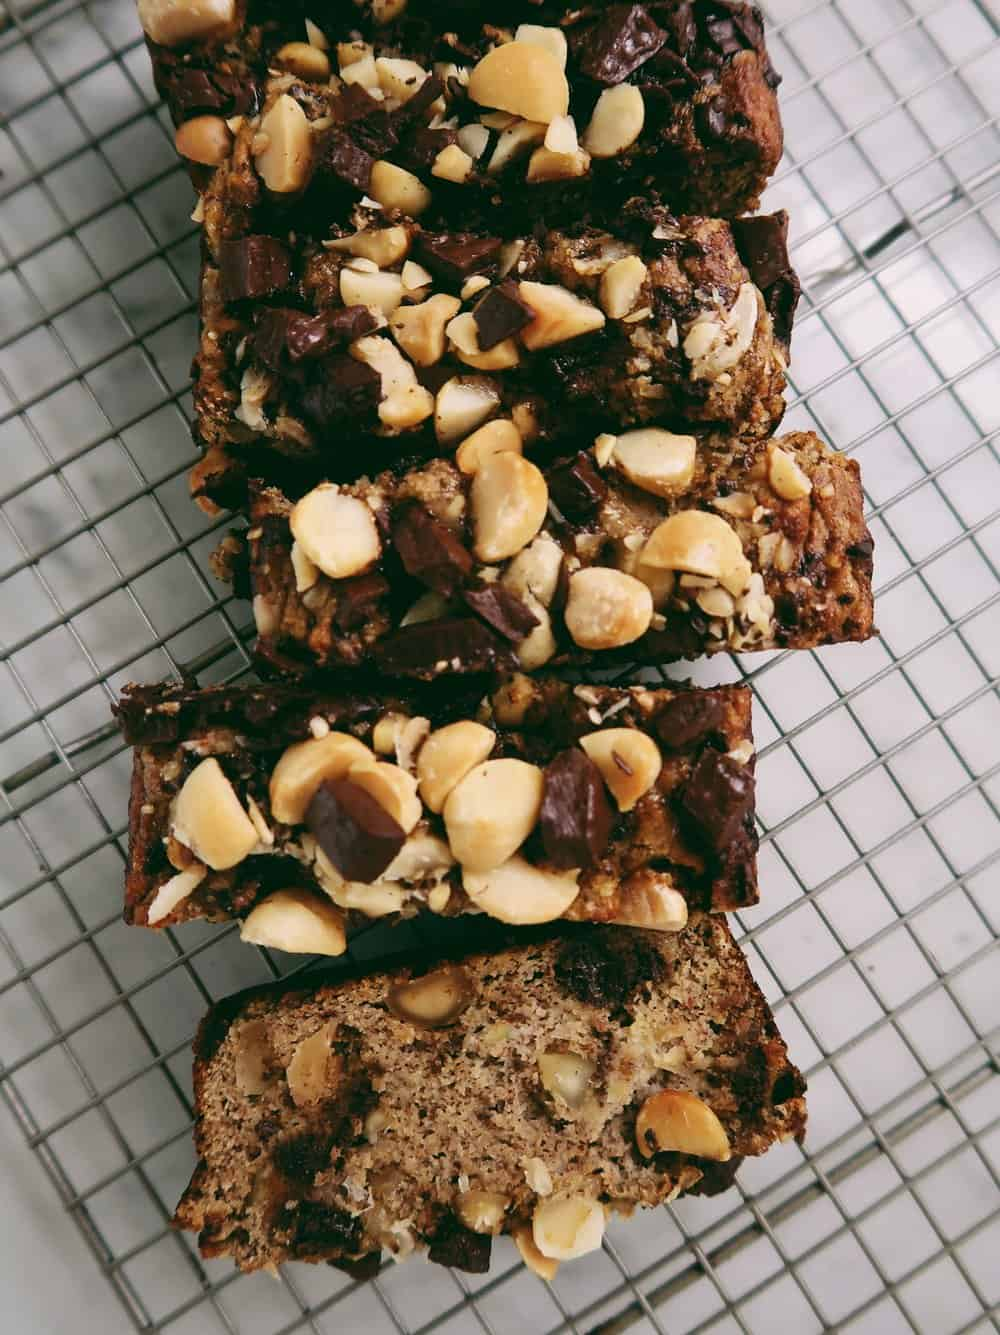 CHOCOLATE CHUNK MACADAMIA BANANA BREAD - INGREDIENTS2 large, ripe bananas (if your bananas are small, add a third)1/2 cup almond butter2 eggs1/2 cup coconut flour3/4 tsp baking soda3/4 tsp baking powder1/4 tsp salt1 tsp cinnamon1 cup macadamia nuts, roughly chopped1 chocolate bar (I used Hu Kitchen as it's my ABSOLUTE FAVORITE!)